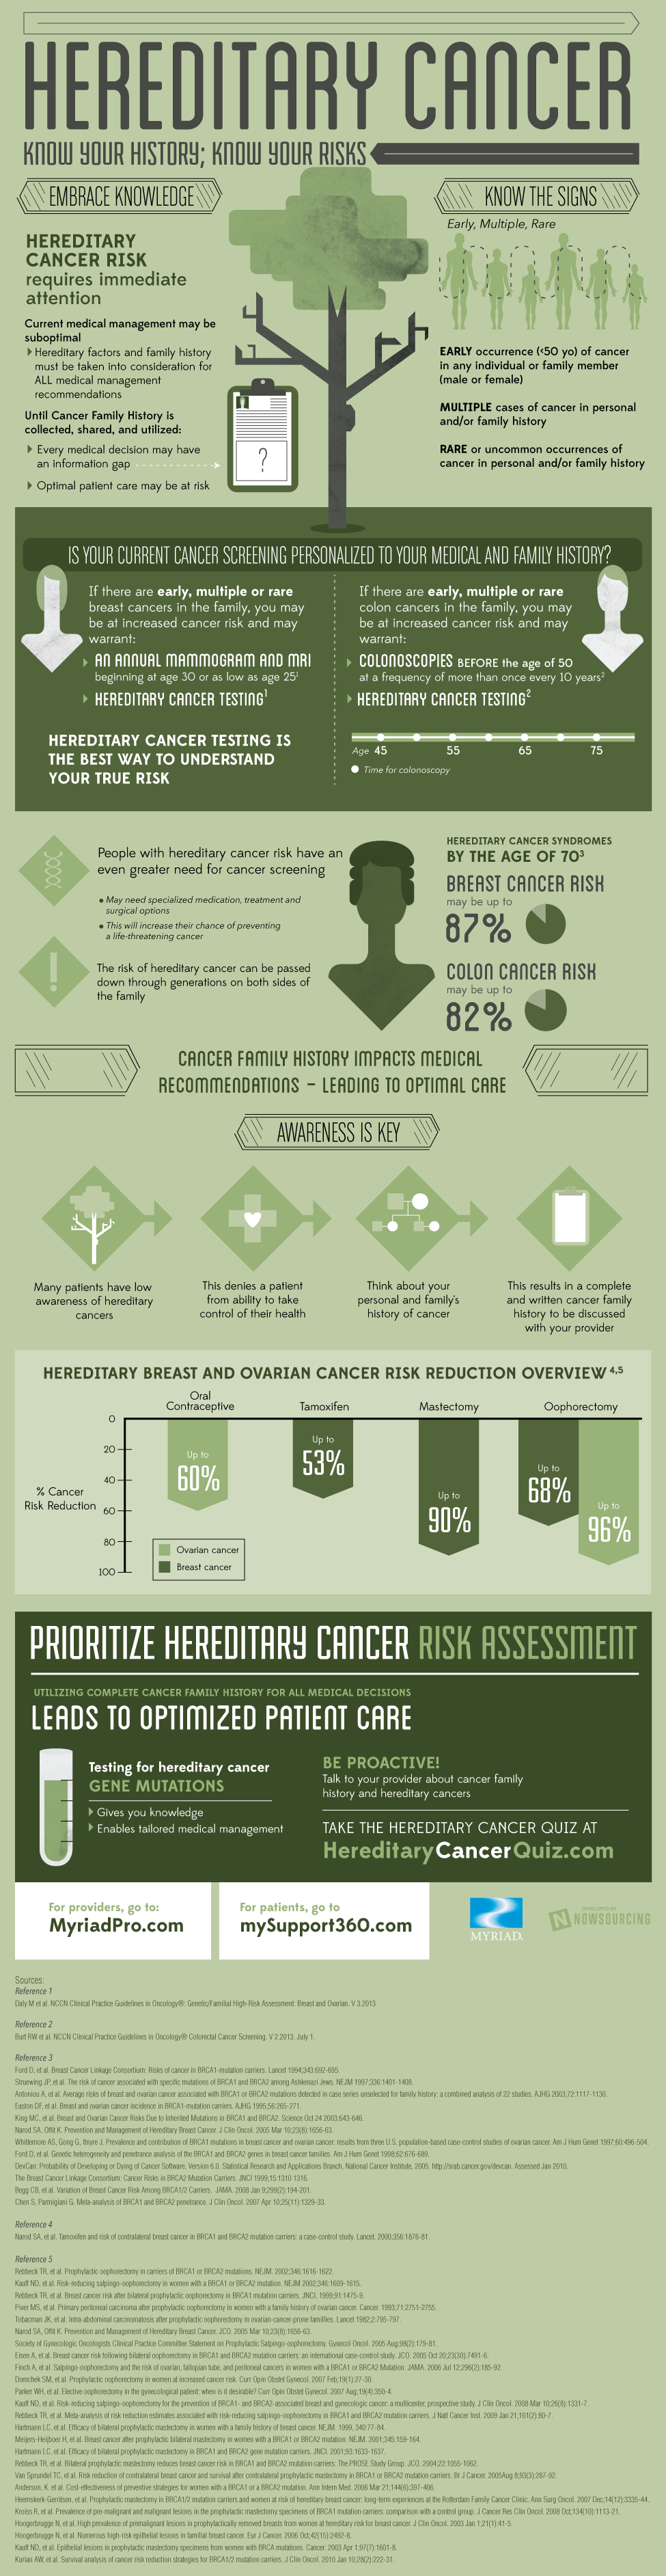 Hereditary Cancer Infographic